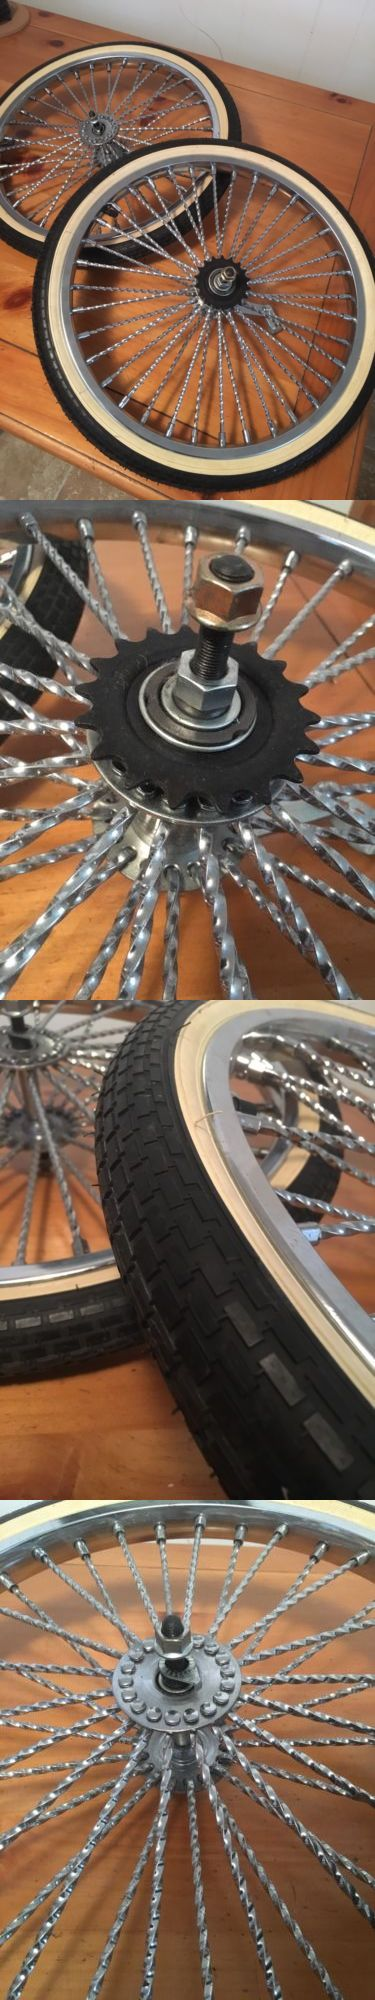 Other Bike Components and Parts 57267: Lowrider Twisted Bicycle Parts 20 Rims And Whitewall Tires Heavy Duty New -> BUY IT NOW ONLY: $200 on eBay!